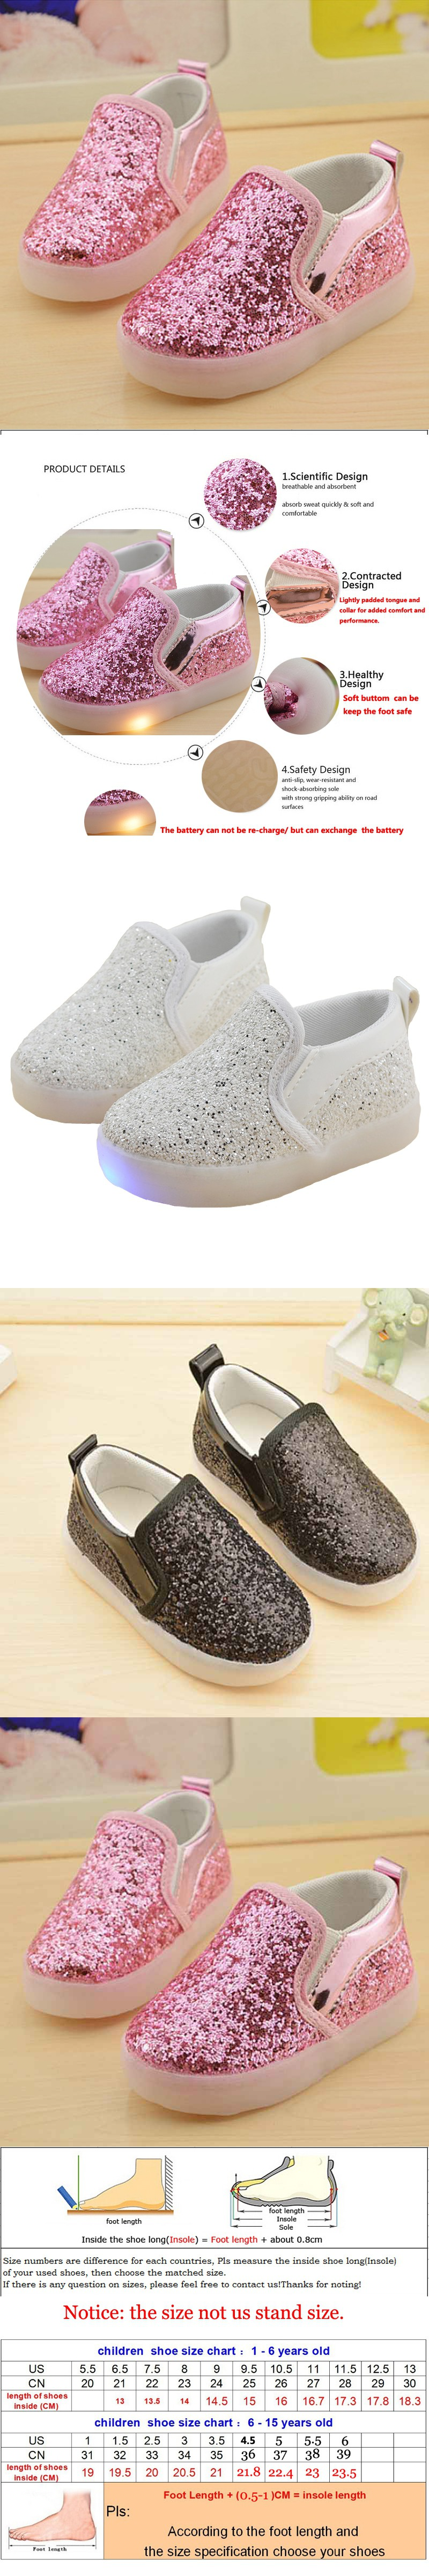 New Boys Girls Led Light Up PU Leather Children Shoes Luminous Glowing Flats Sneaker Sports Casual Running Kids Shoe Size 21-30 $6.99